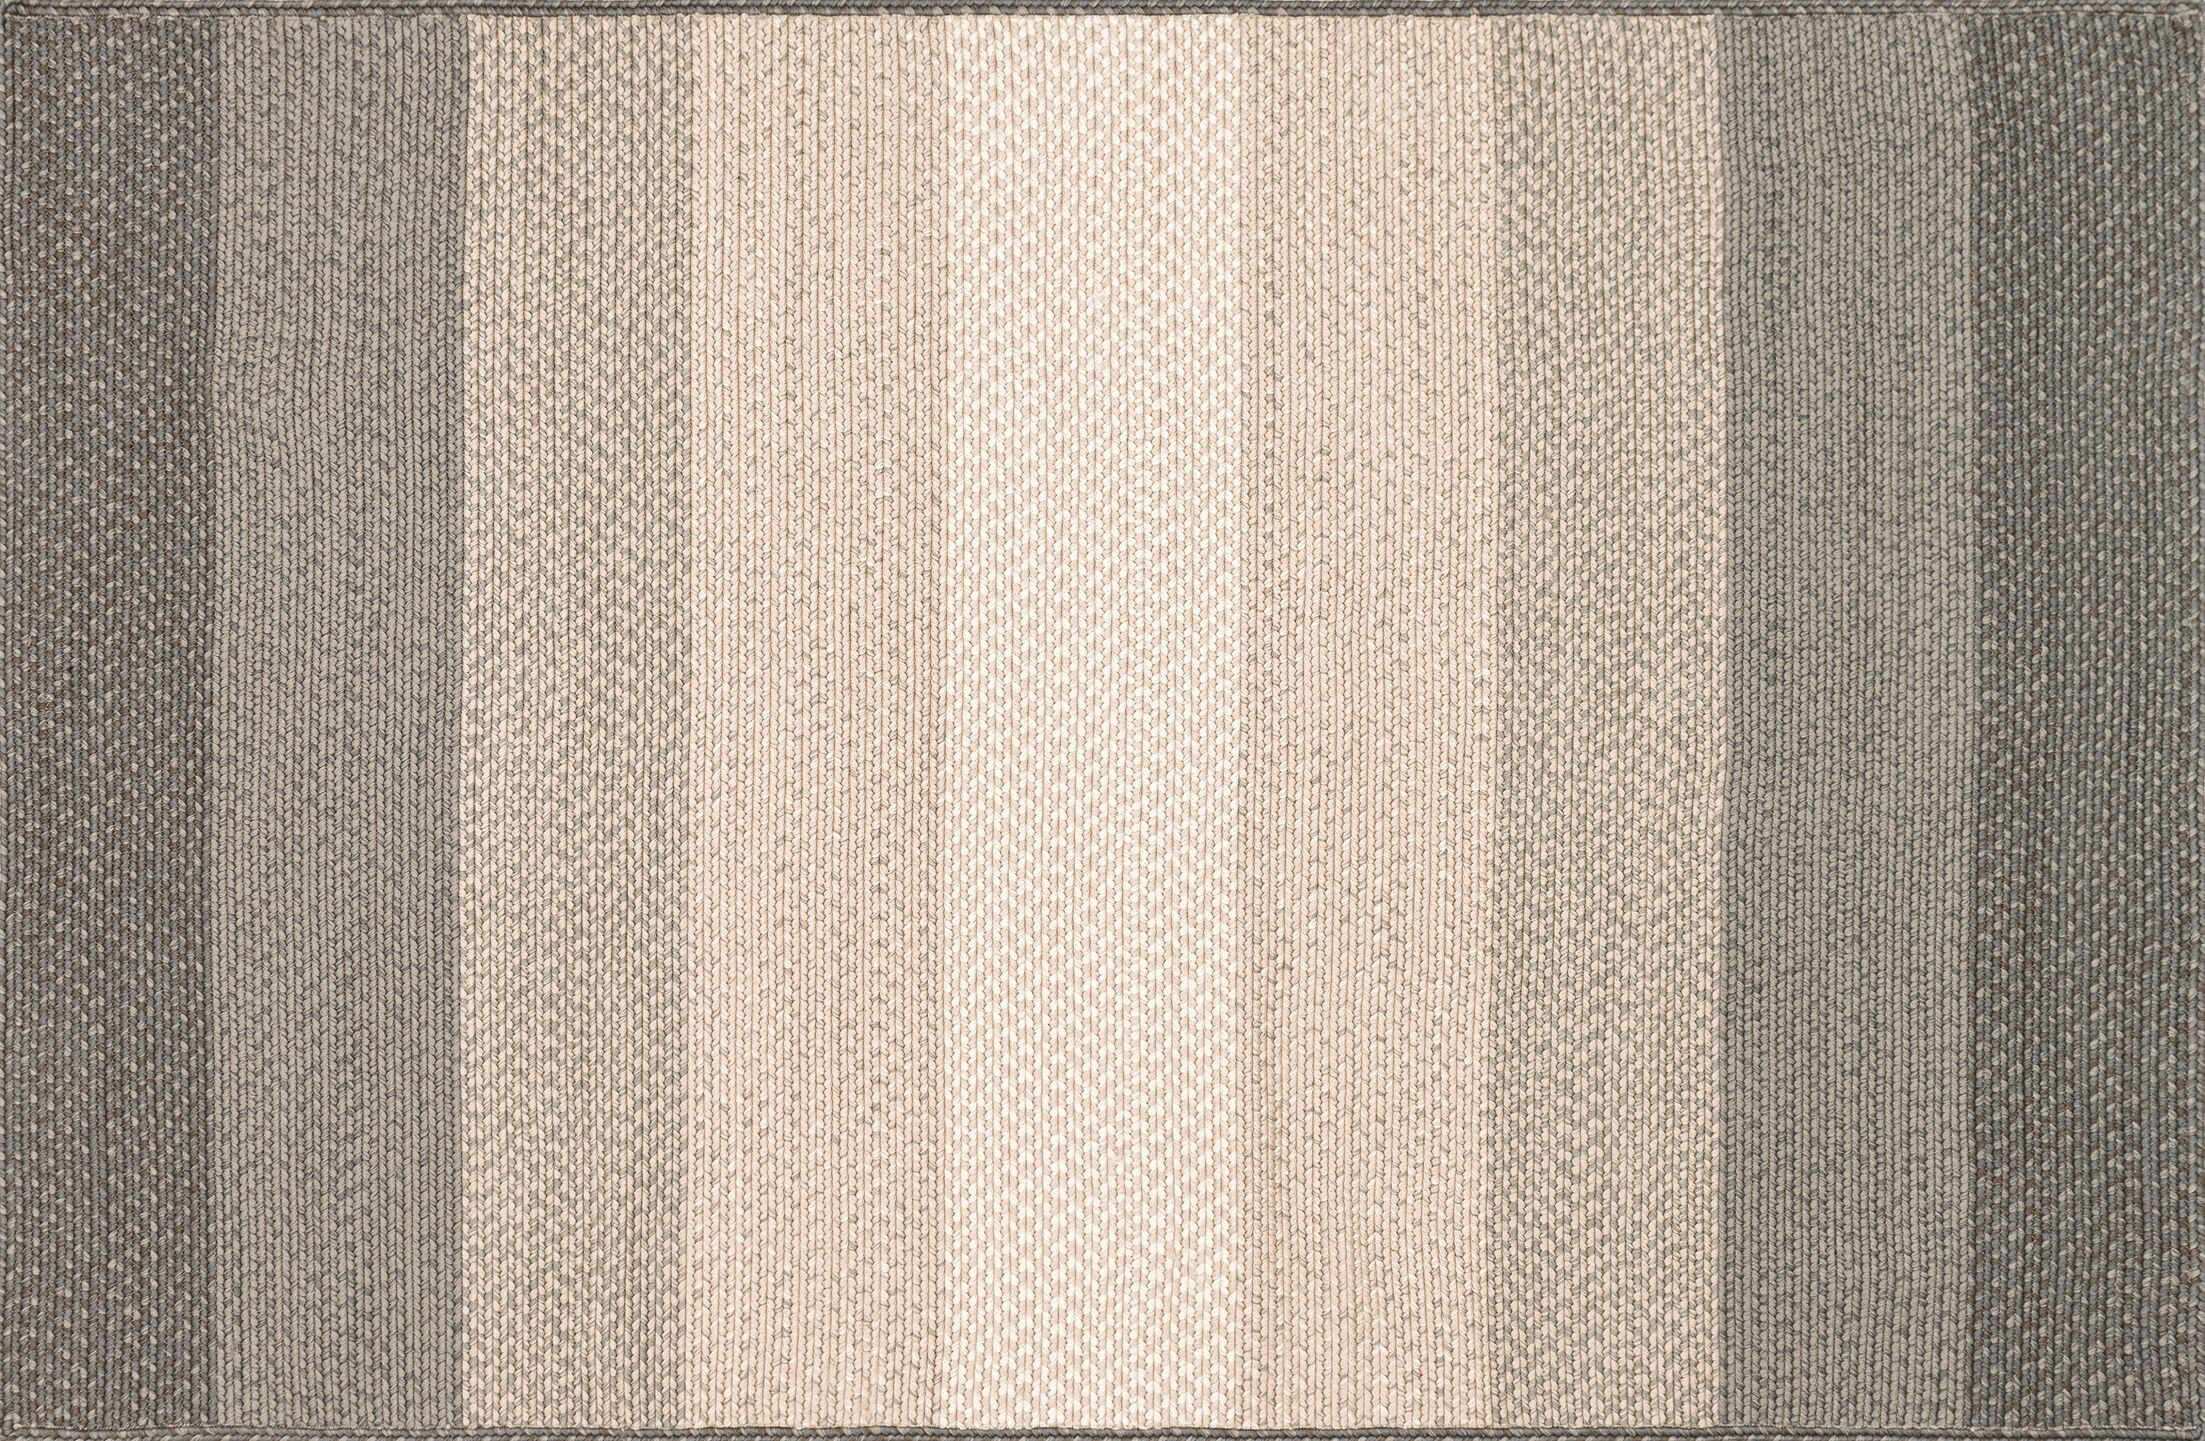 Barta Hand-Braided Neutral Indoor/Outdoor Area Rug Rug Size: Rectangle 5' x 7'6